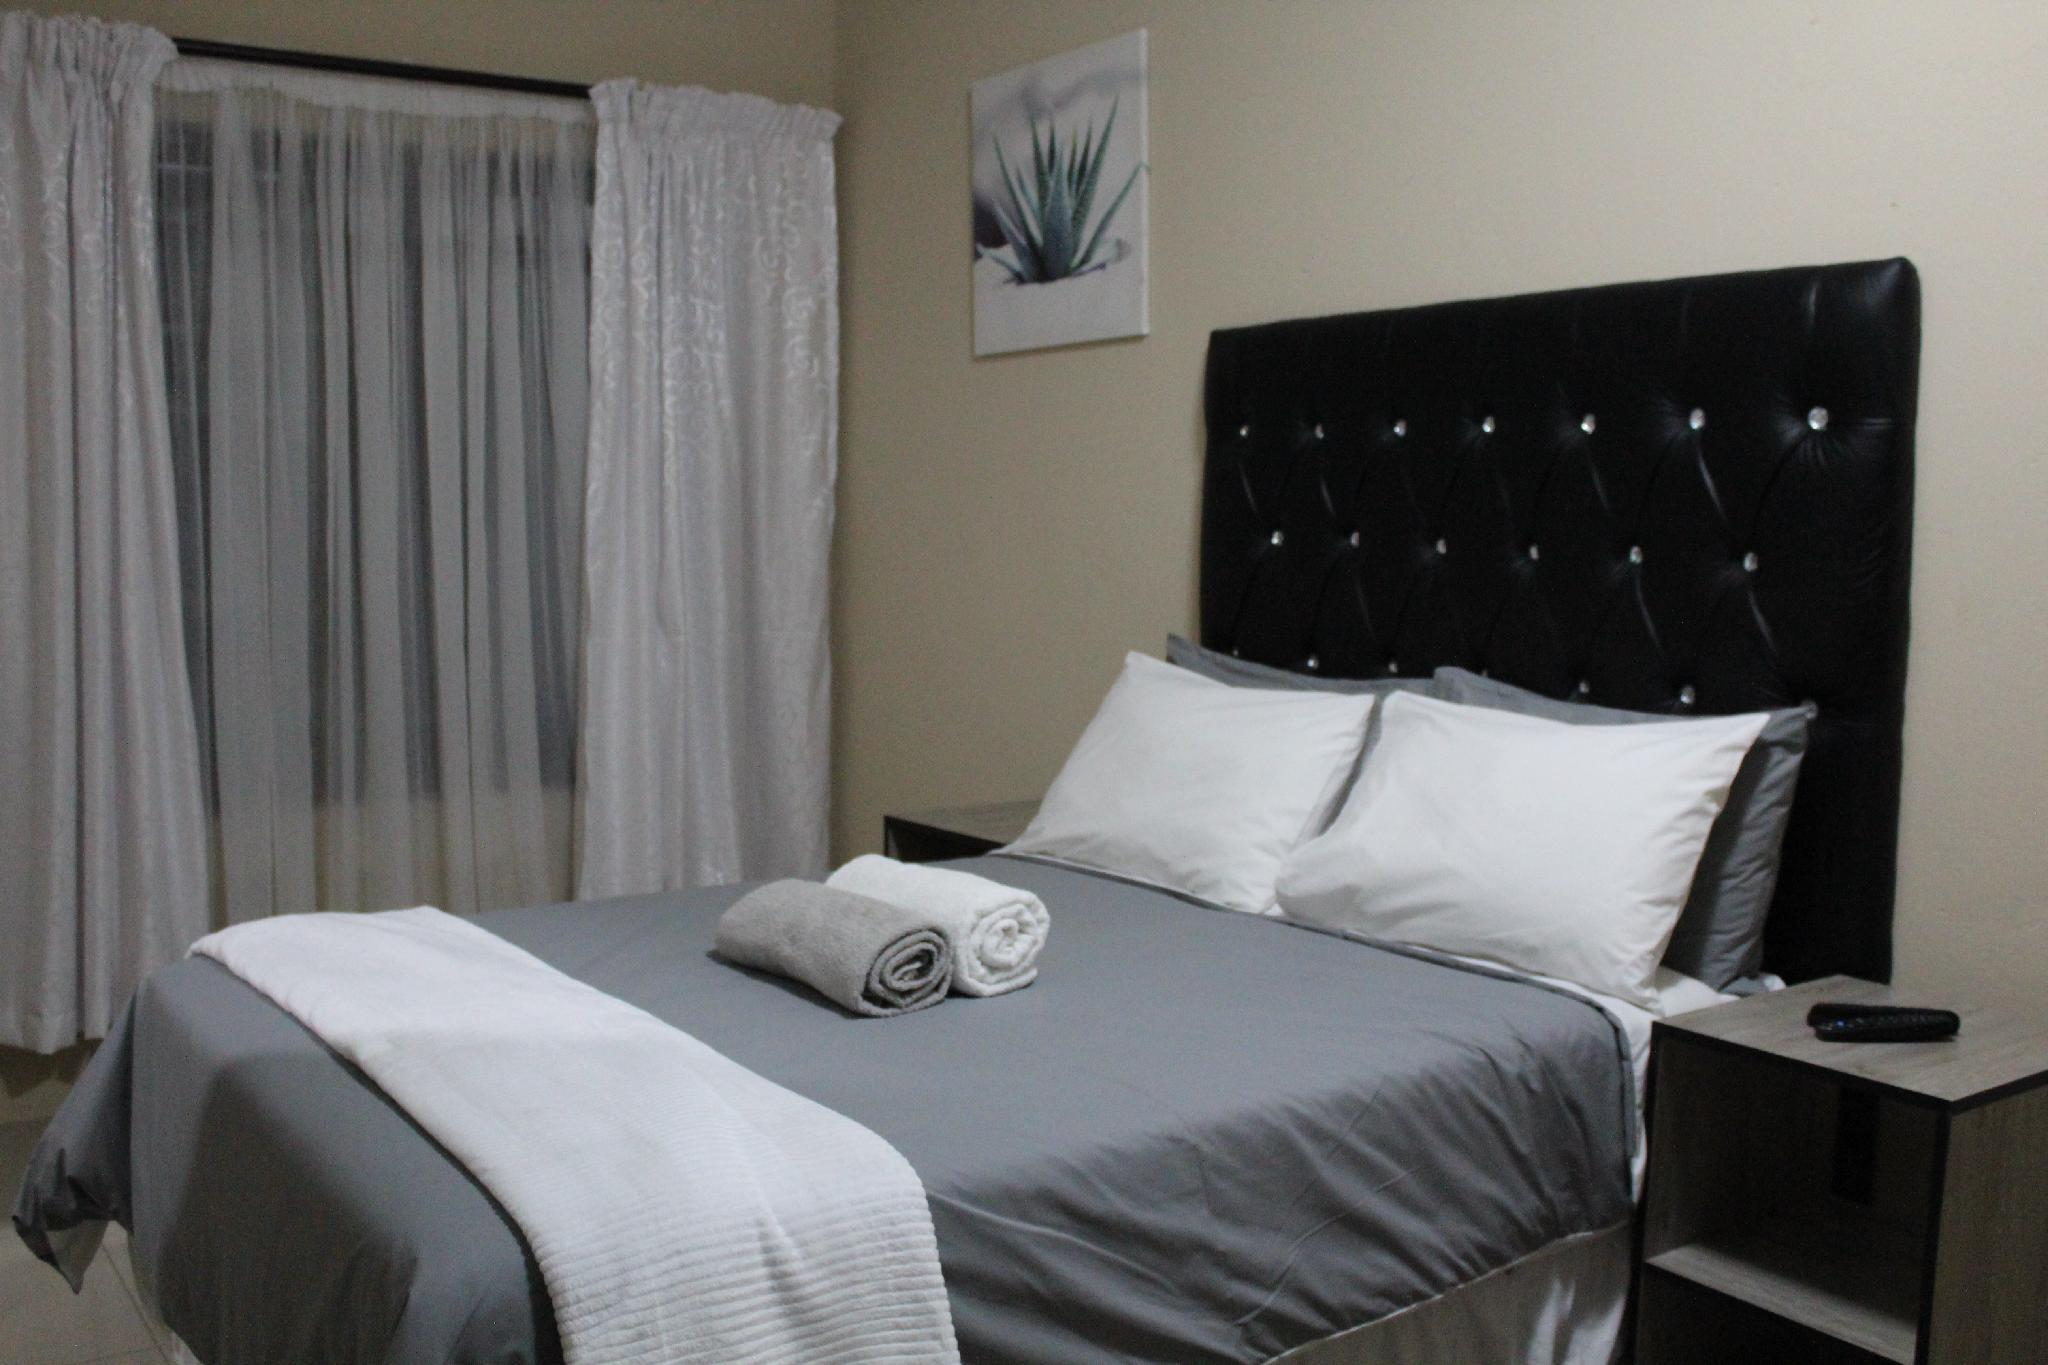 Best Price On M N M Guest House In Polokwane Turfloop In Polokwane Reviews